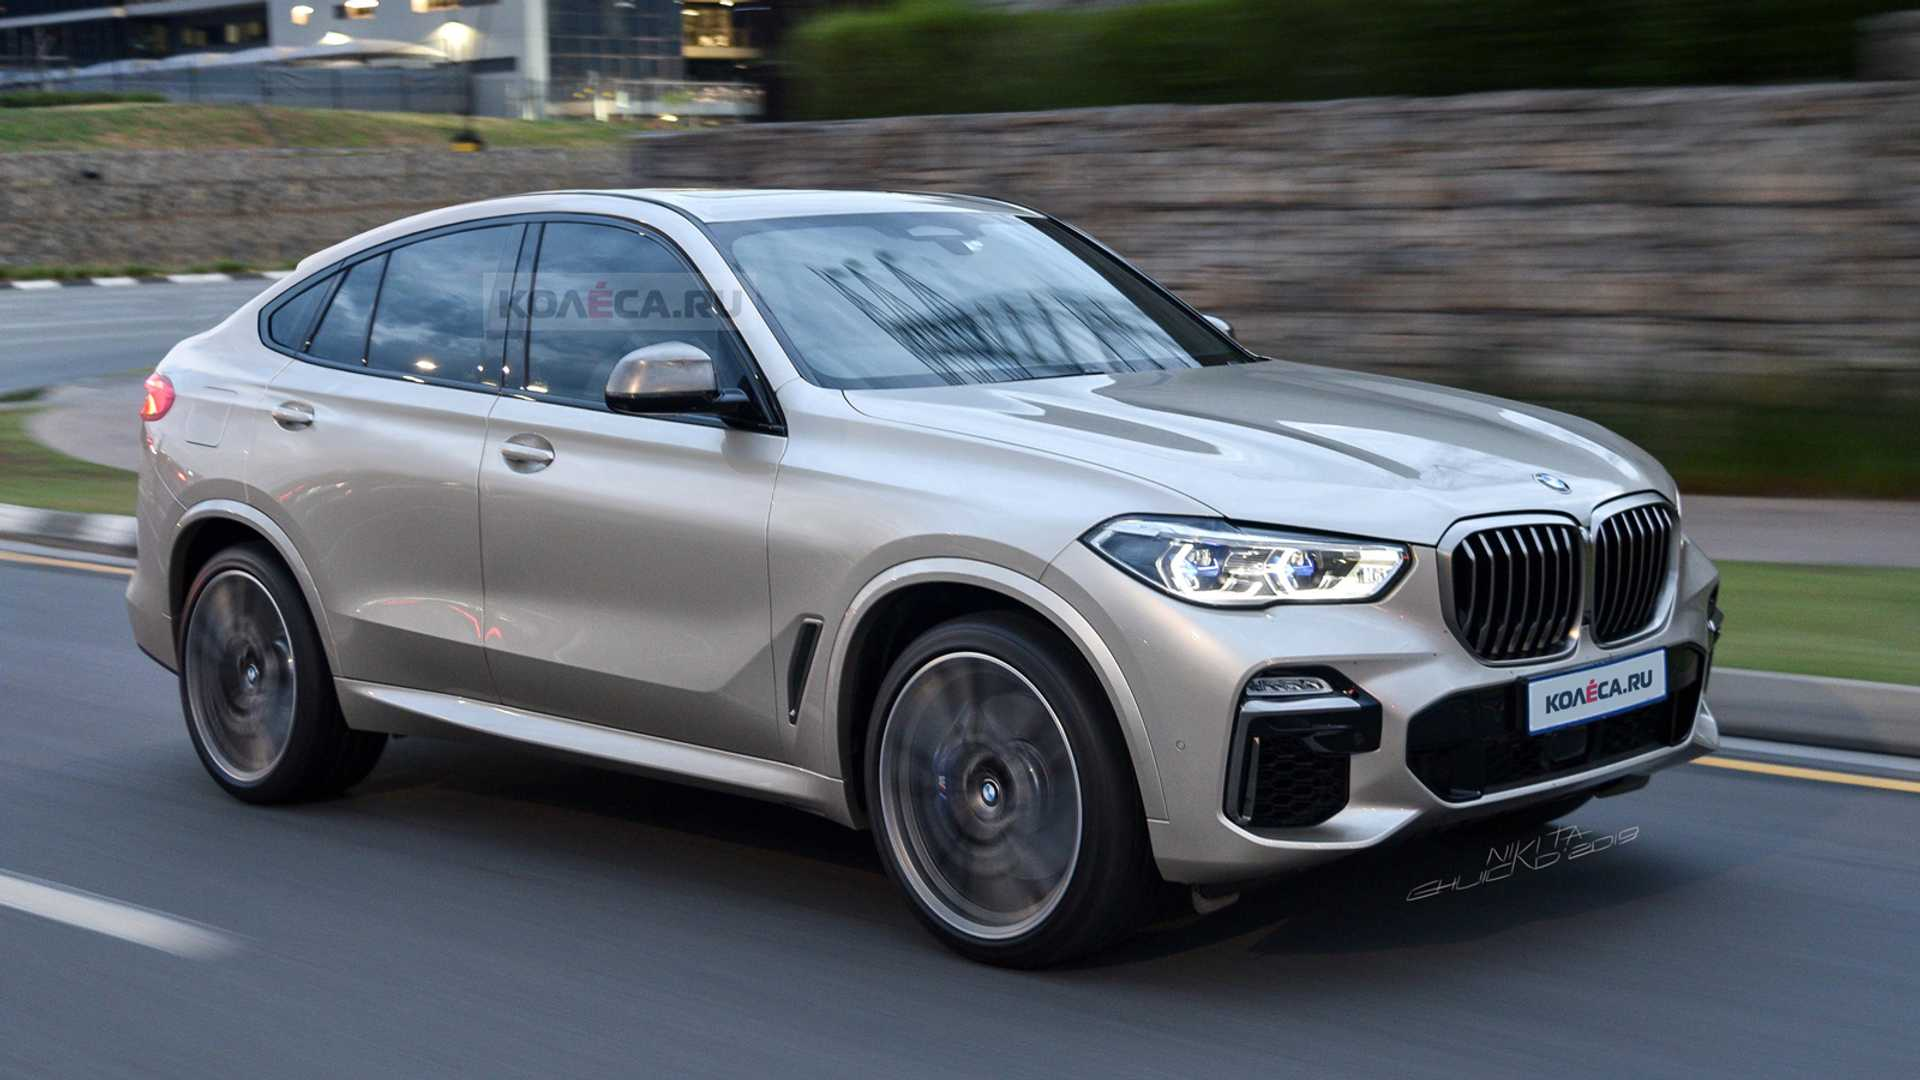 51 Best Review When Will The 2020 BMW Come Out Style with When Will The 2020 BMW Come Out